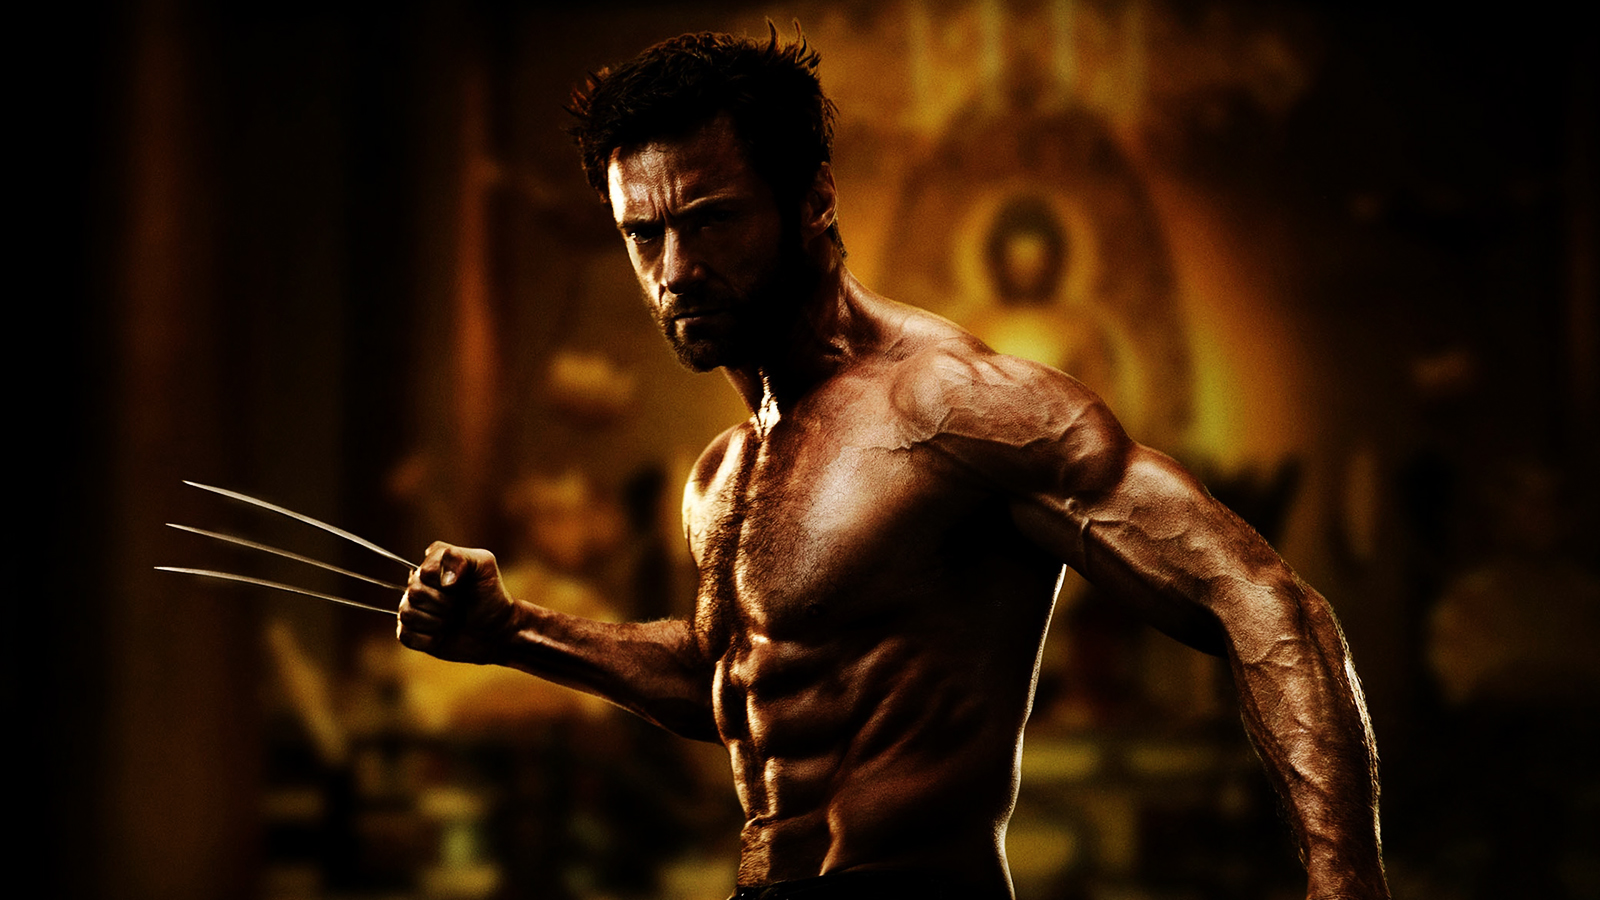 http://2.bp.blogspot.com/-SRA-OxqCBzg/UJi62-hPytI/AAAAAAAAF2o/a3ZuzoNxuGk/s1600/The-Wolverine-Movie-2013-Hugh-Jackman-HD-Wallpaper_Vvallpaper.Net.jpg